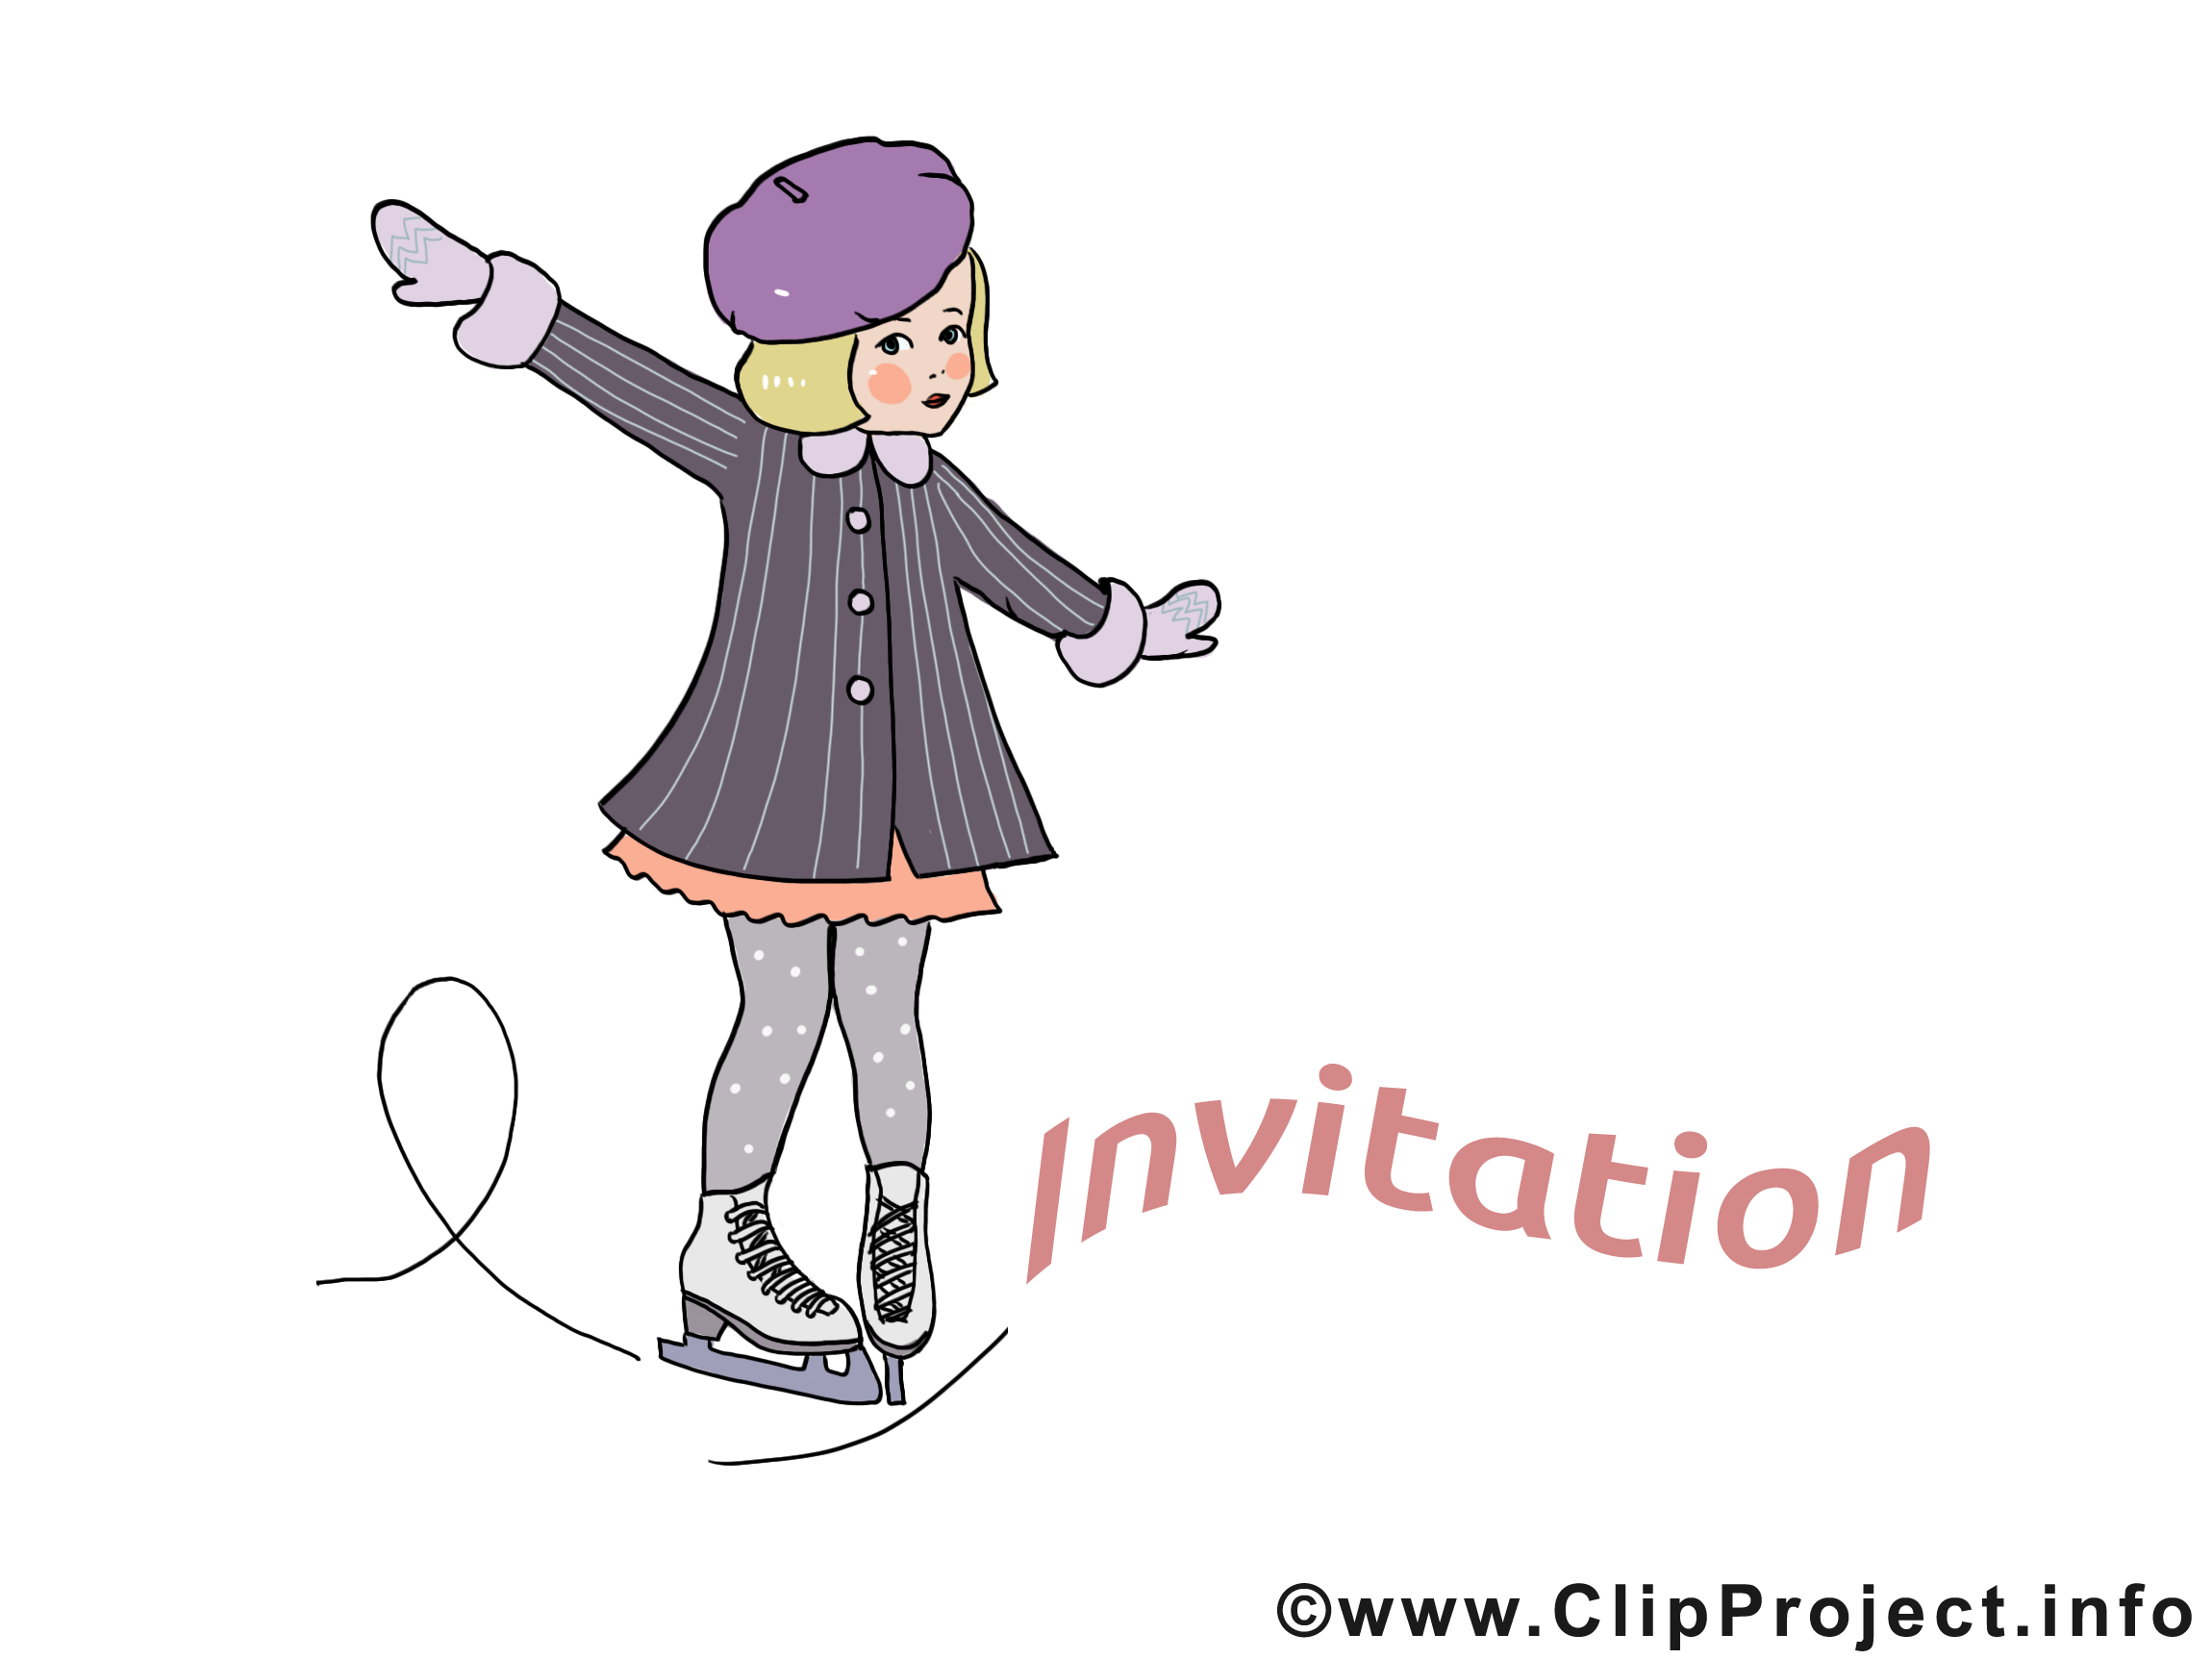 Patinage dessin - Invitation cliparts à télécharger